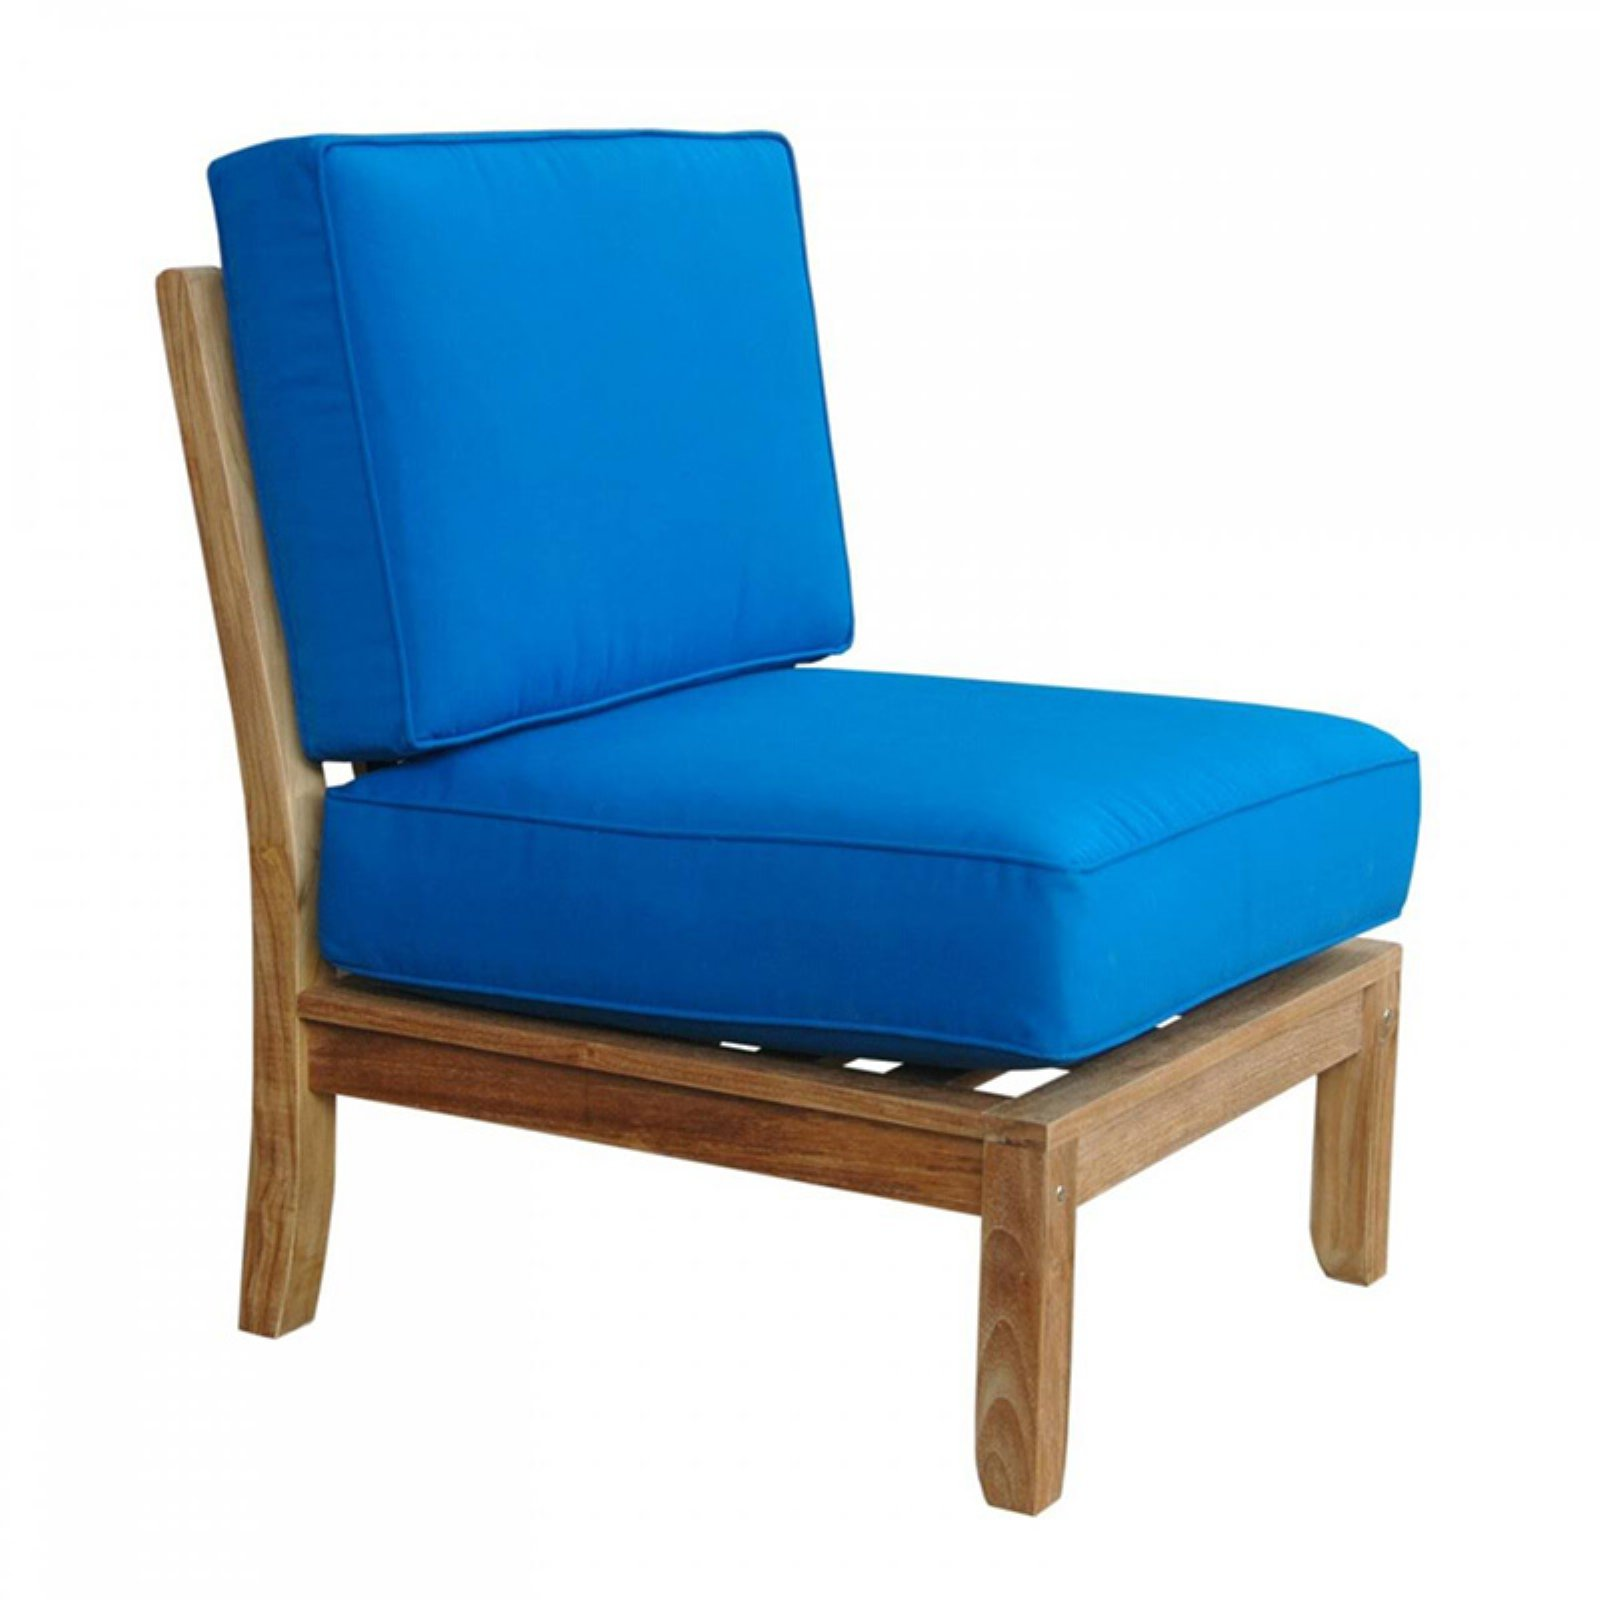 Anderson Teak Natsepa Center Deep Seat Outdoor Modular Chair